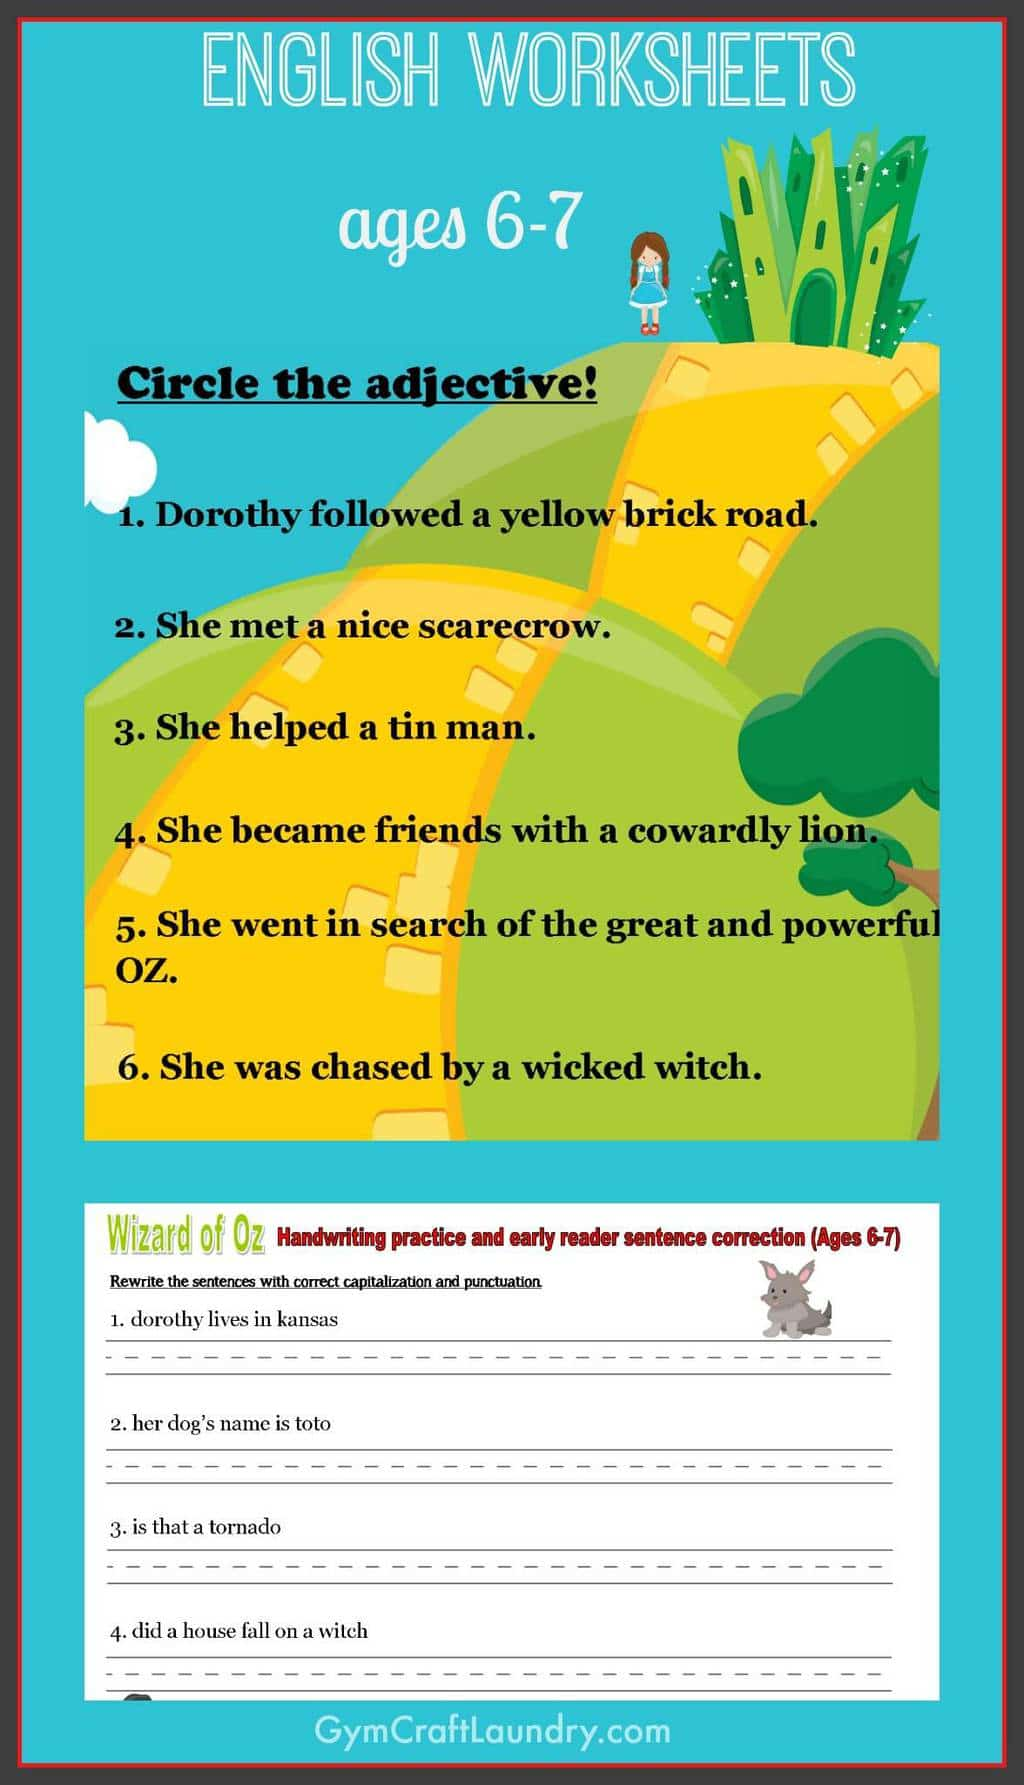 hight resolution of First Grade English Worksheets: Wizard of Oz themed - Gym Craft Laundry